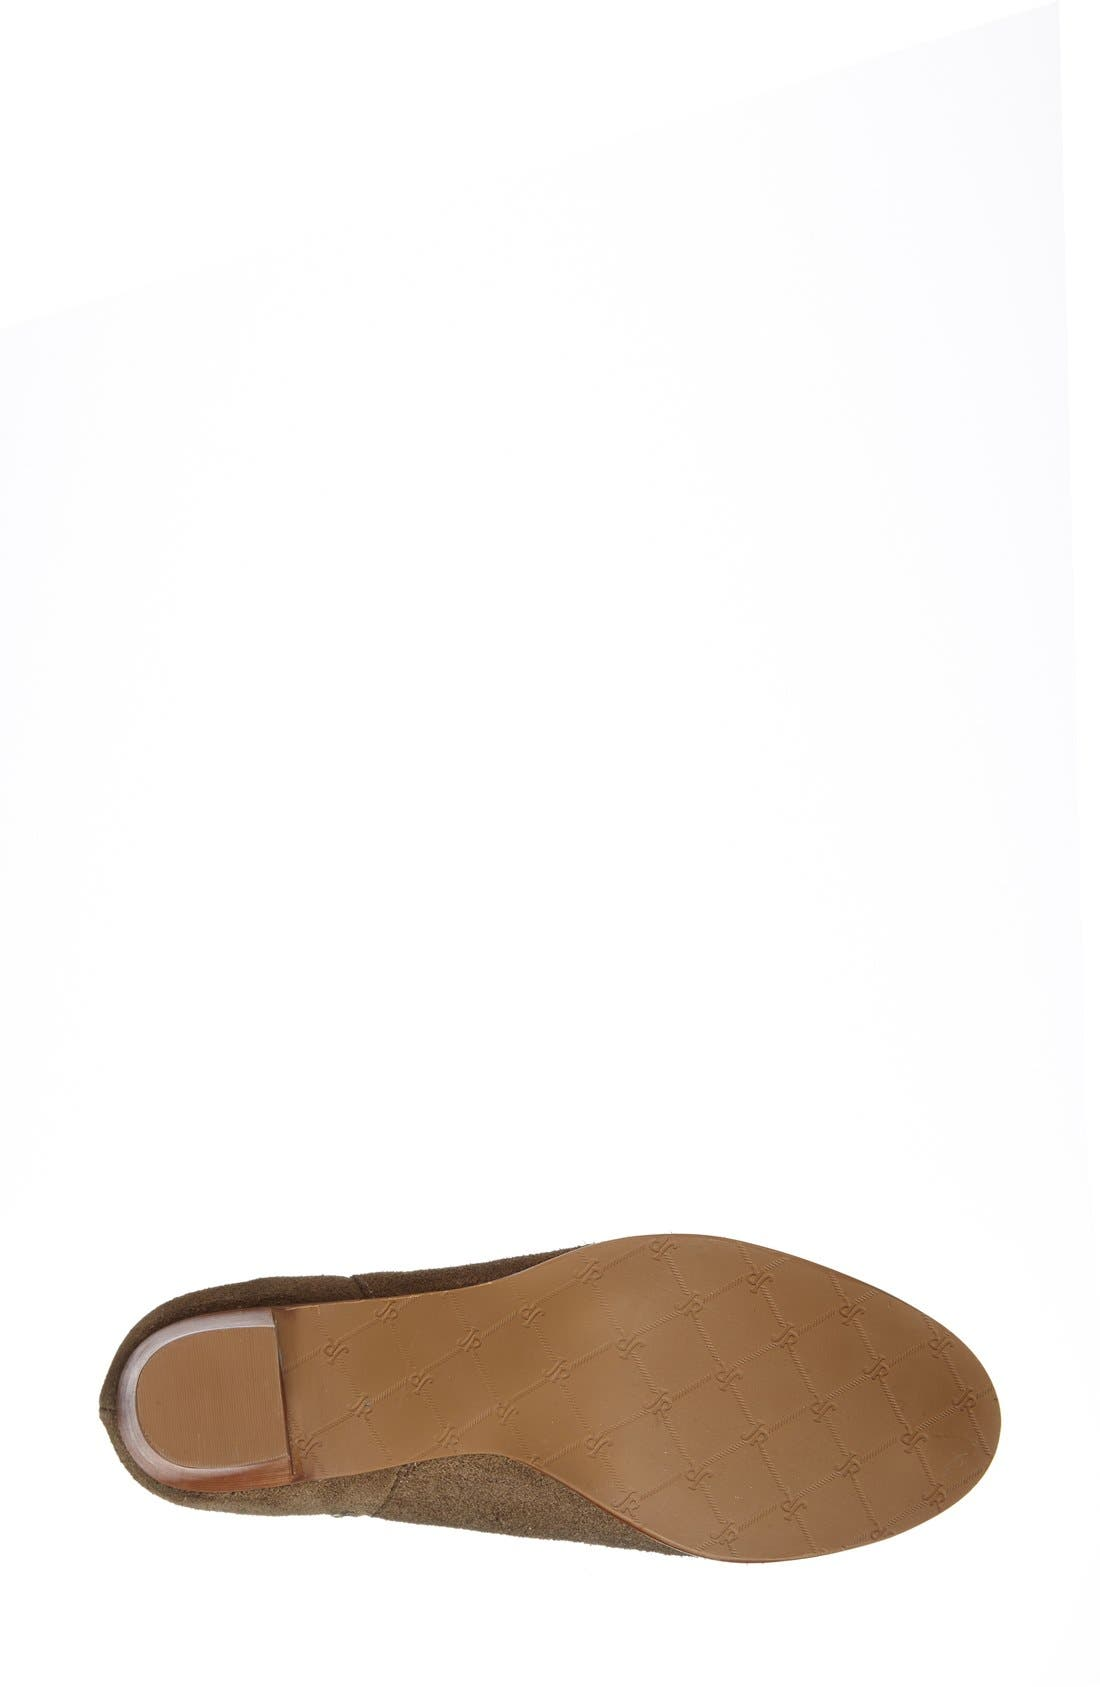 'Marianne' Bootie,                             Alternate thumbnail 4, color,                             Olive Suede